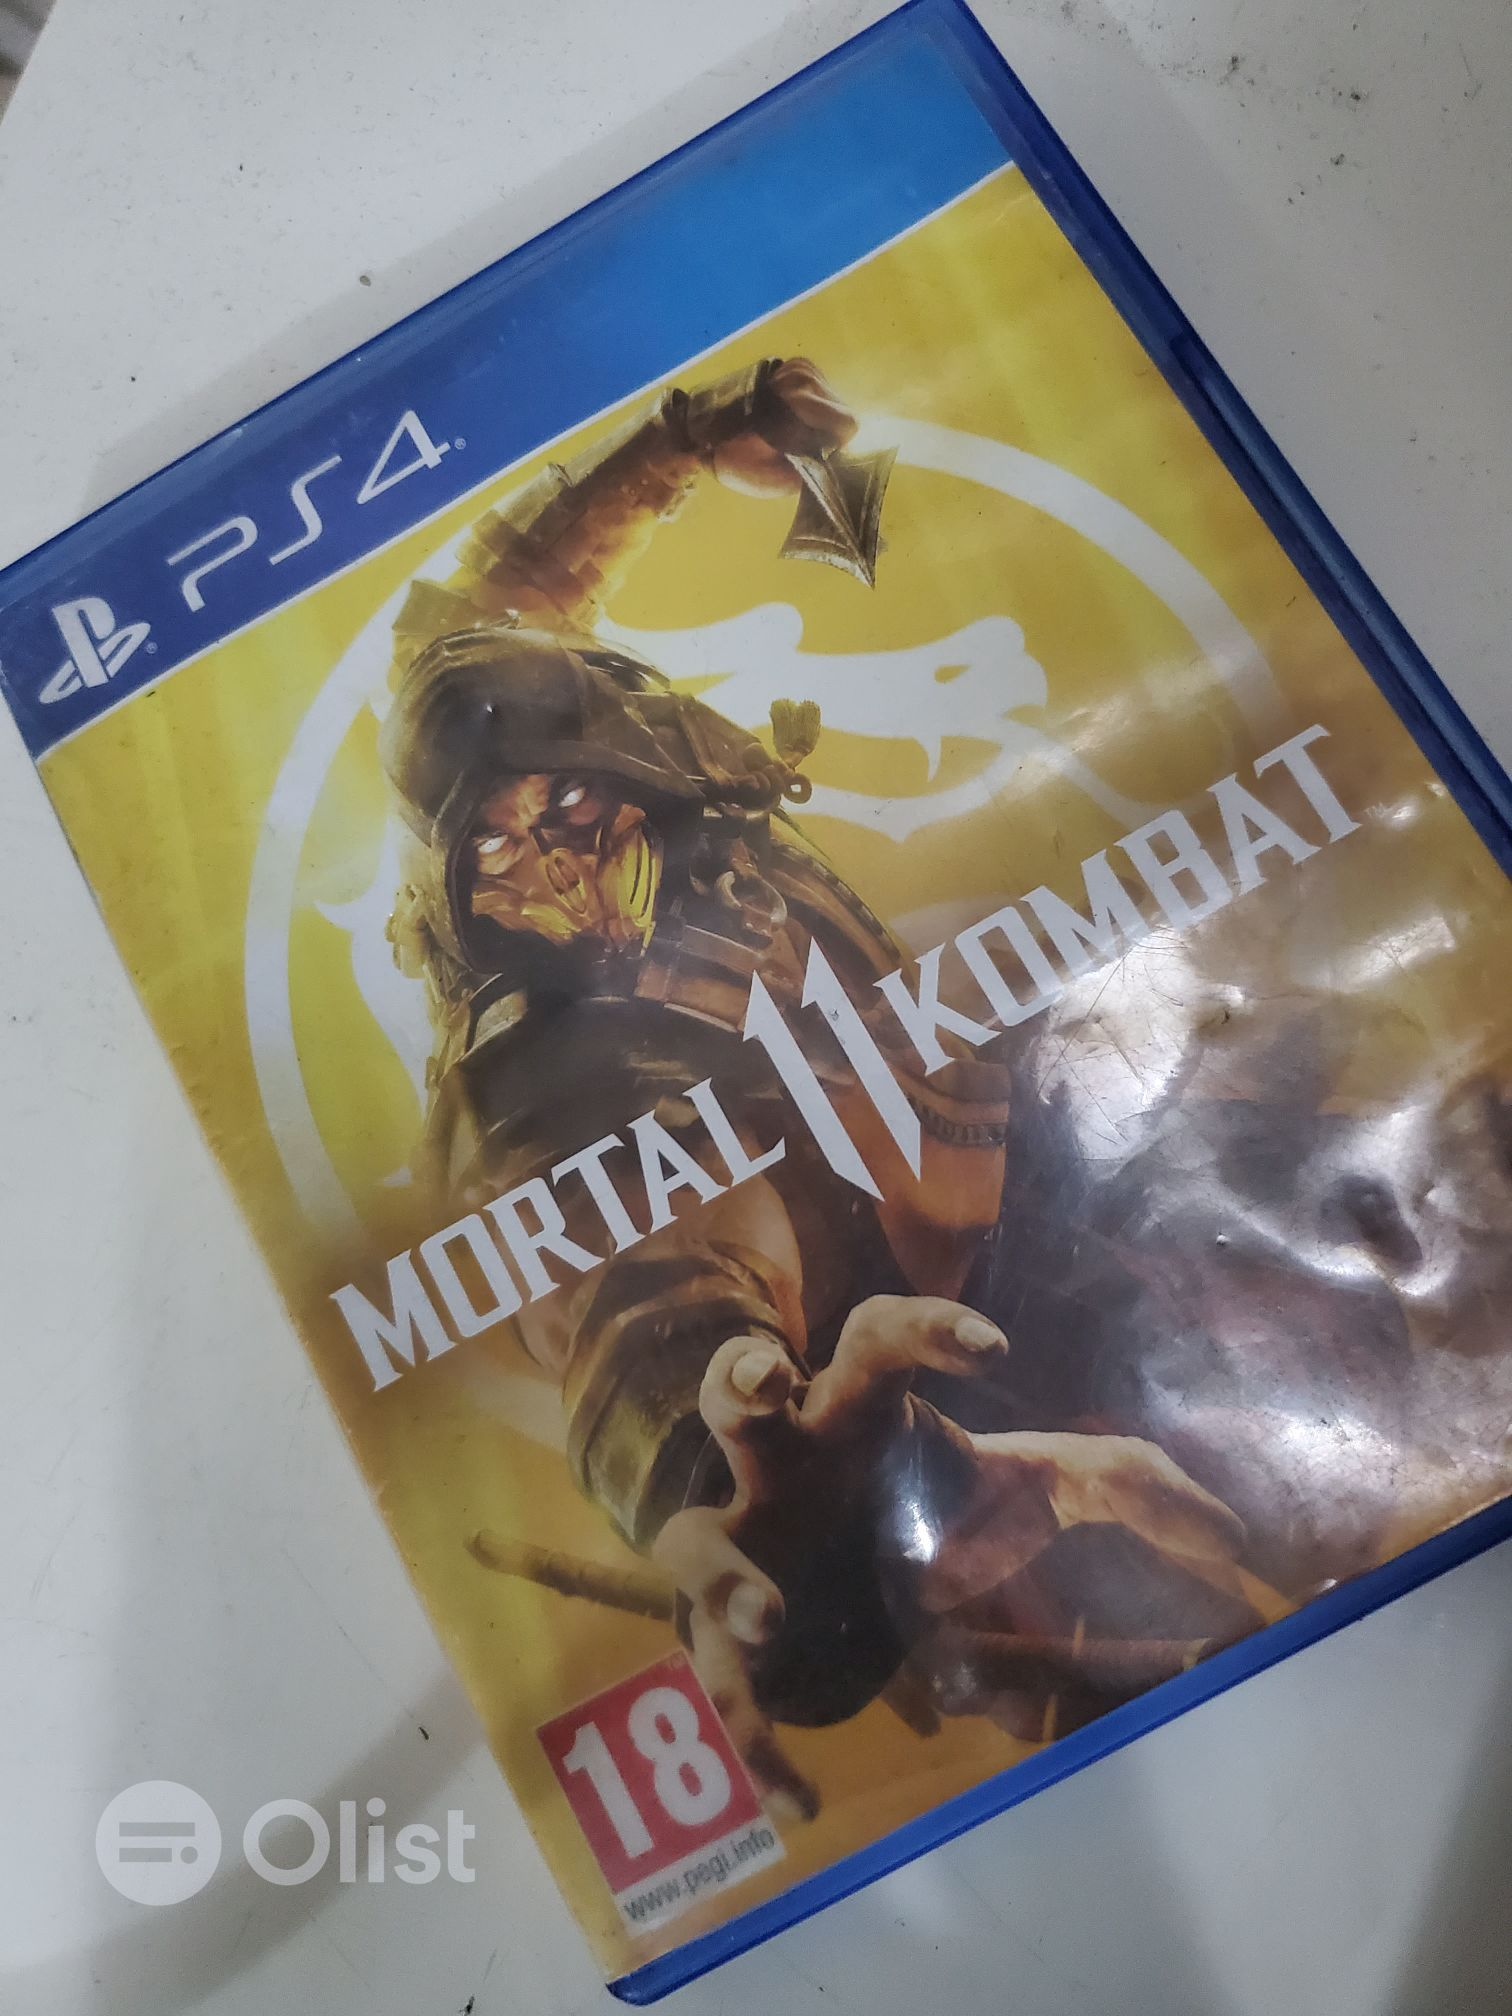 Mortal kombat for ps4 up for grabs at an affordable price